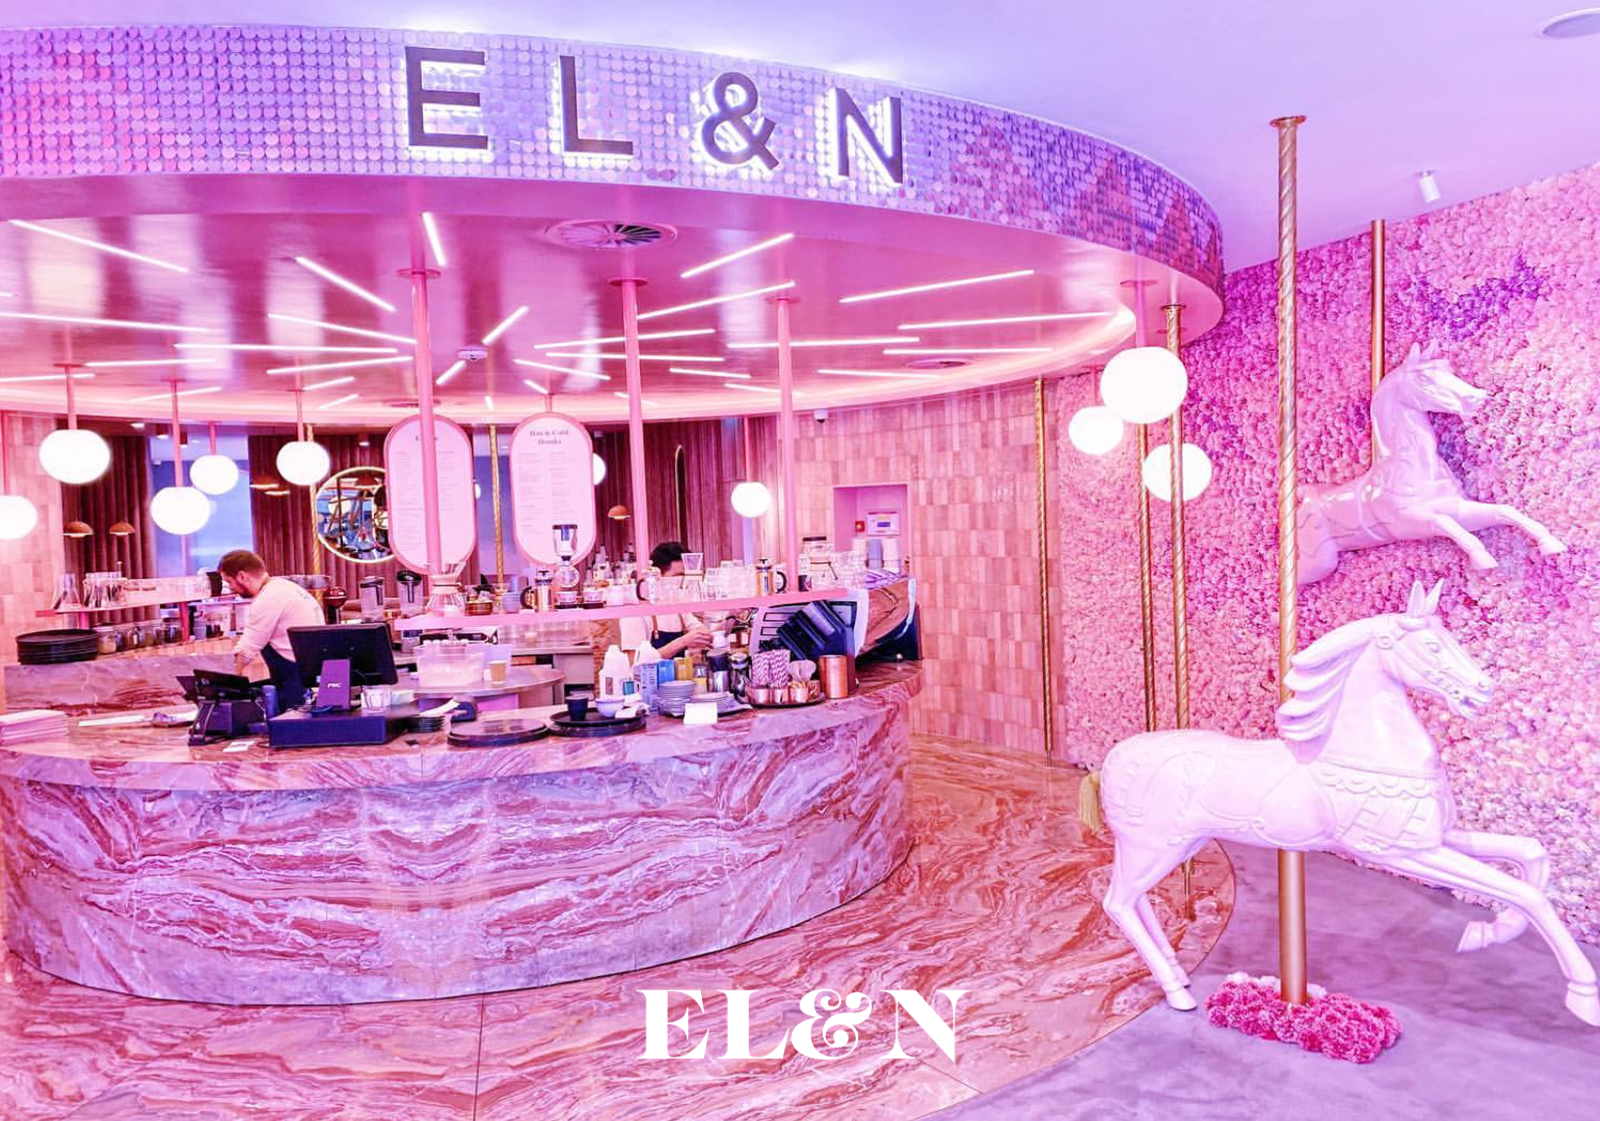 el&n-retail-design-londres